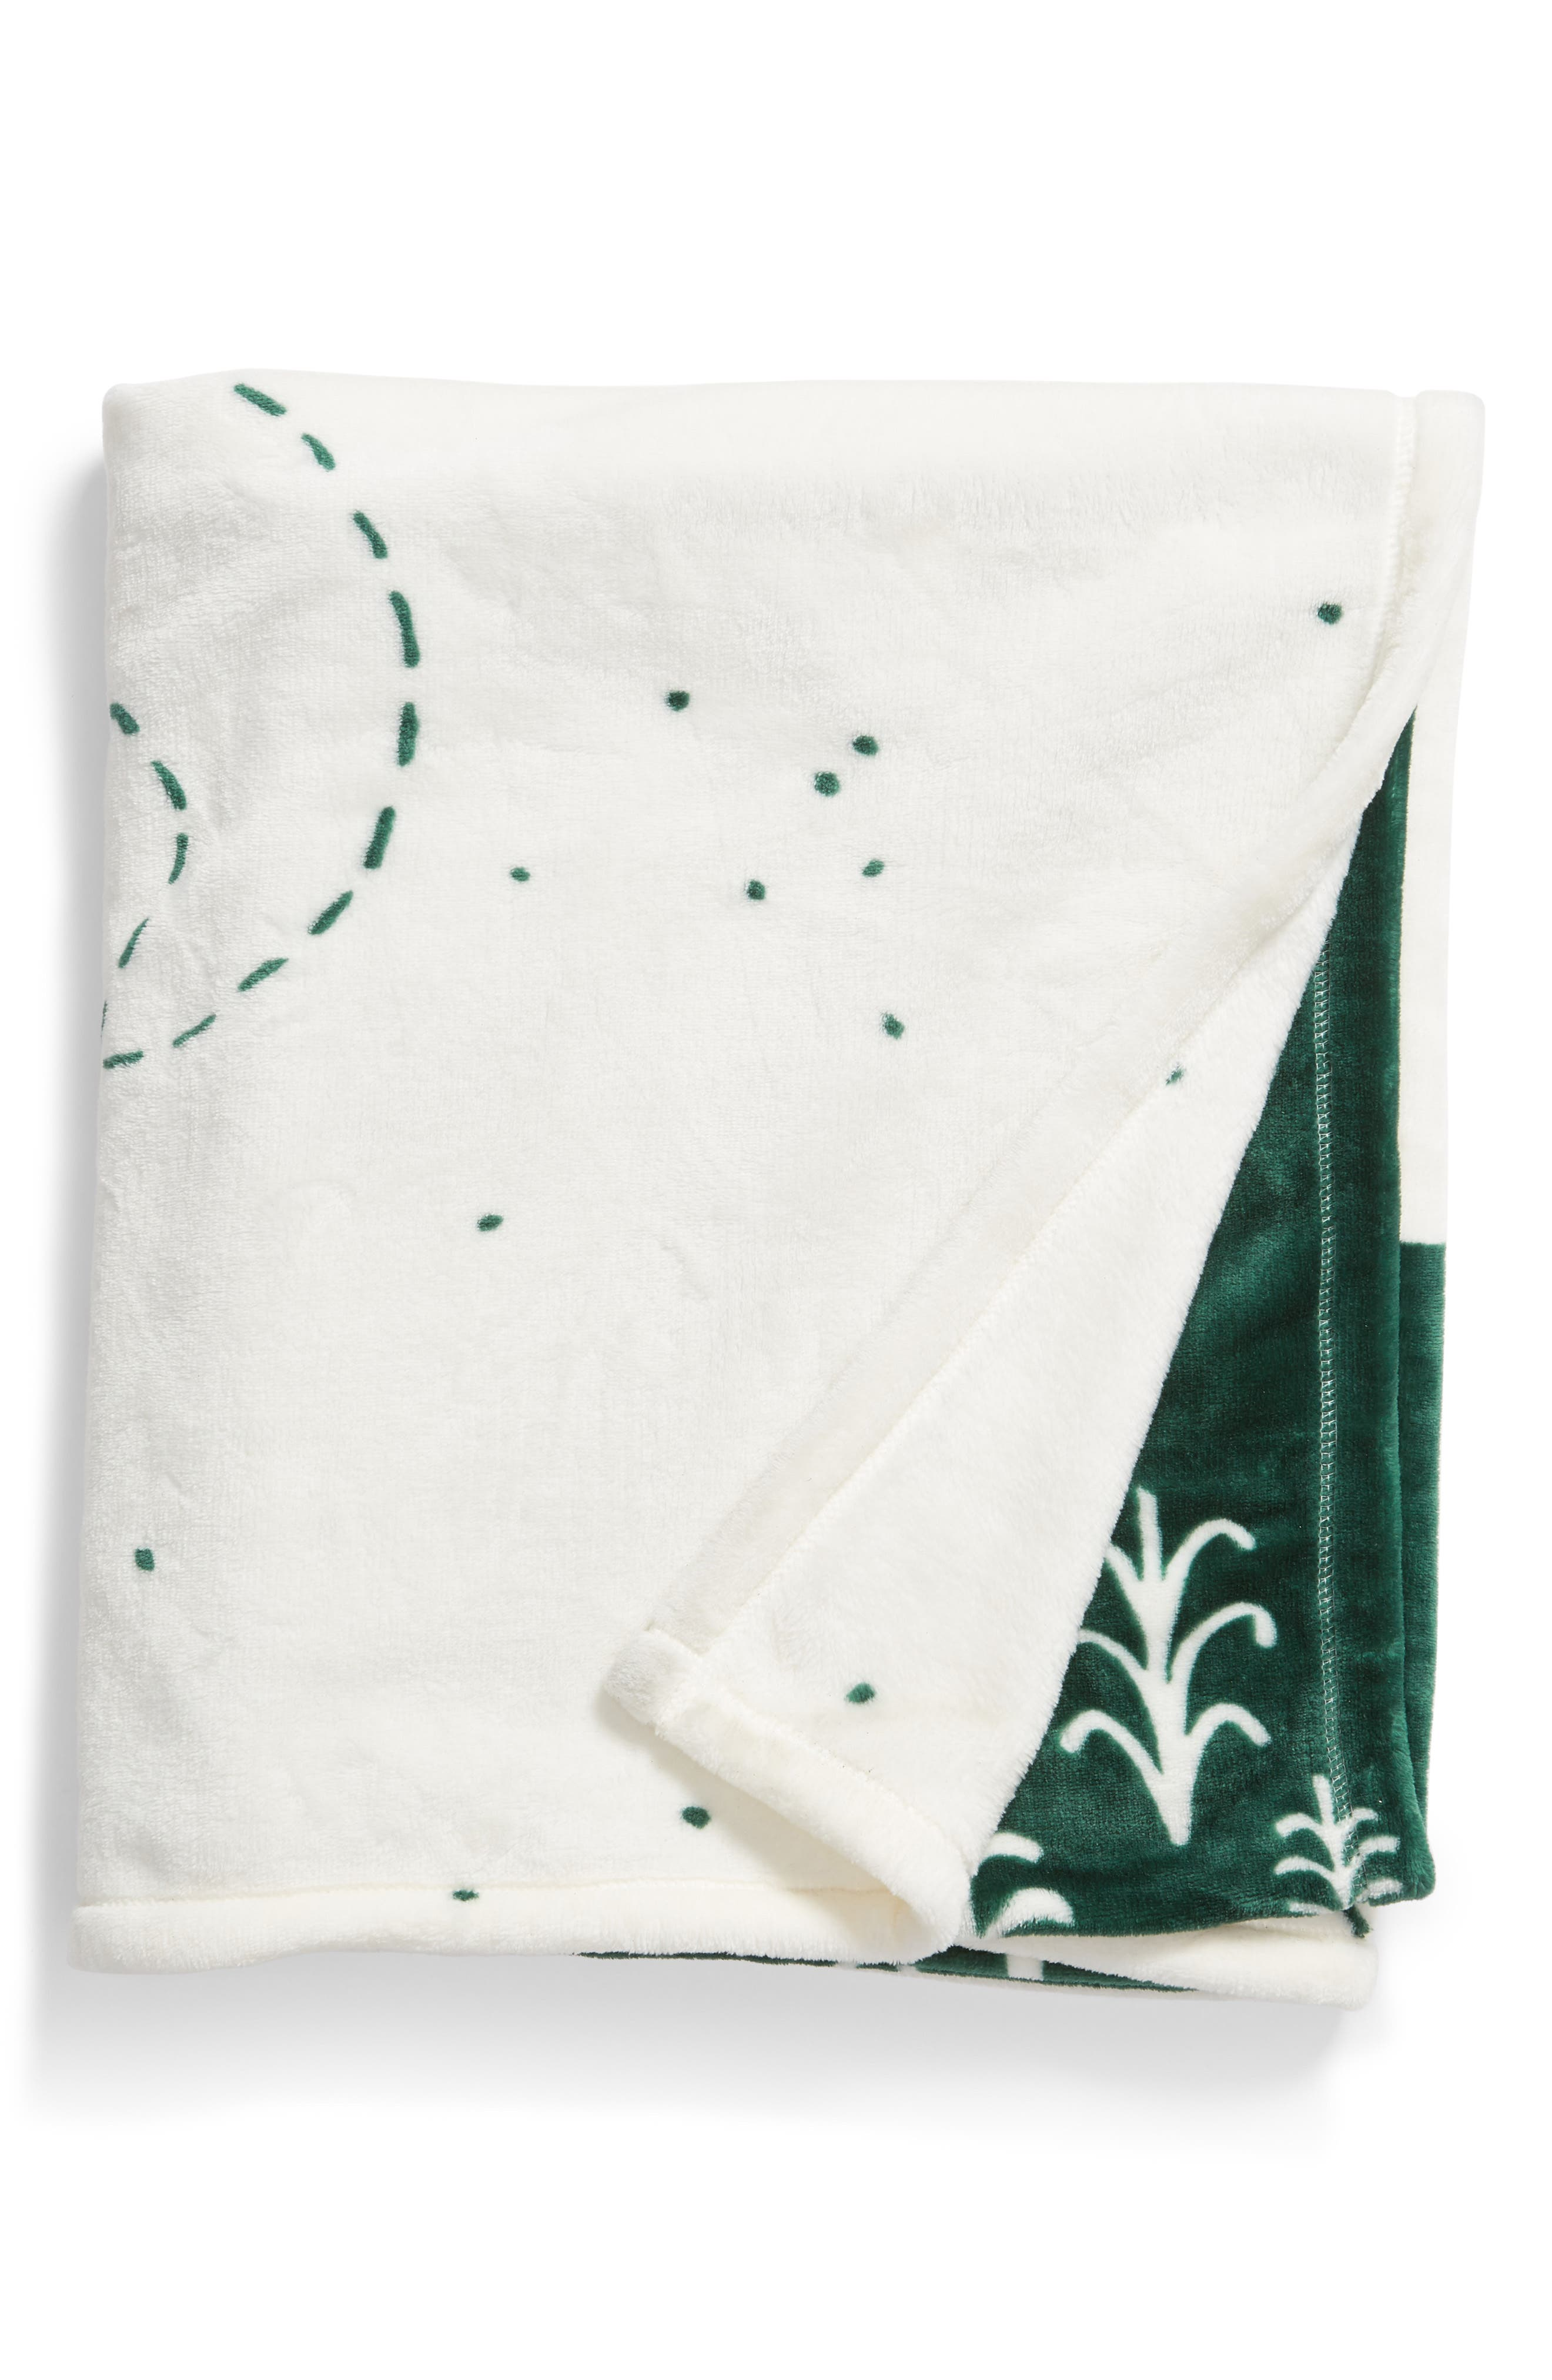 NORDSTROM AT HOME, Midnight Forest Plush Throw, Main thumbnail 1, color, GREEN DARK FOREST